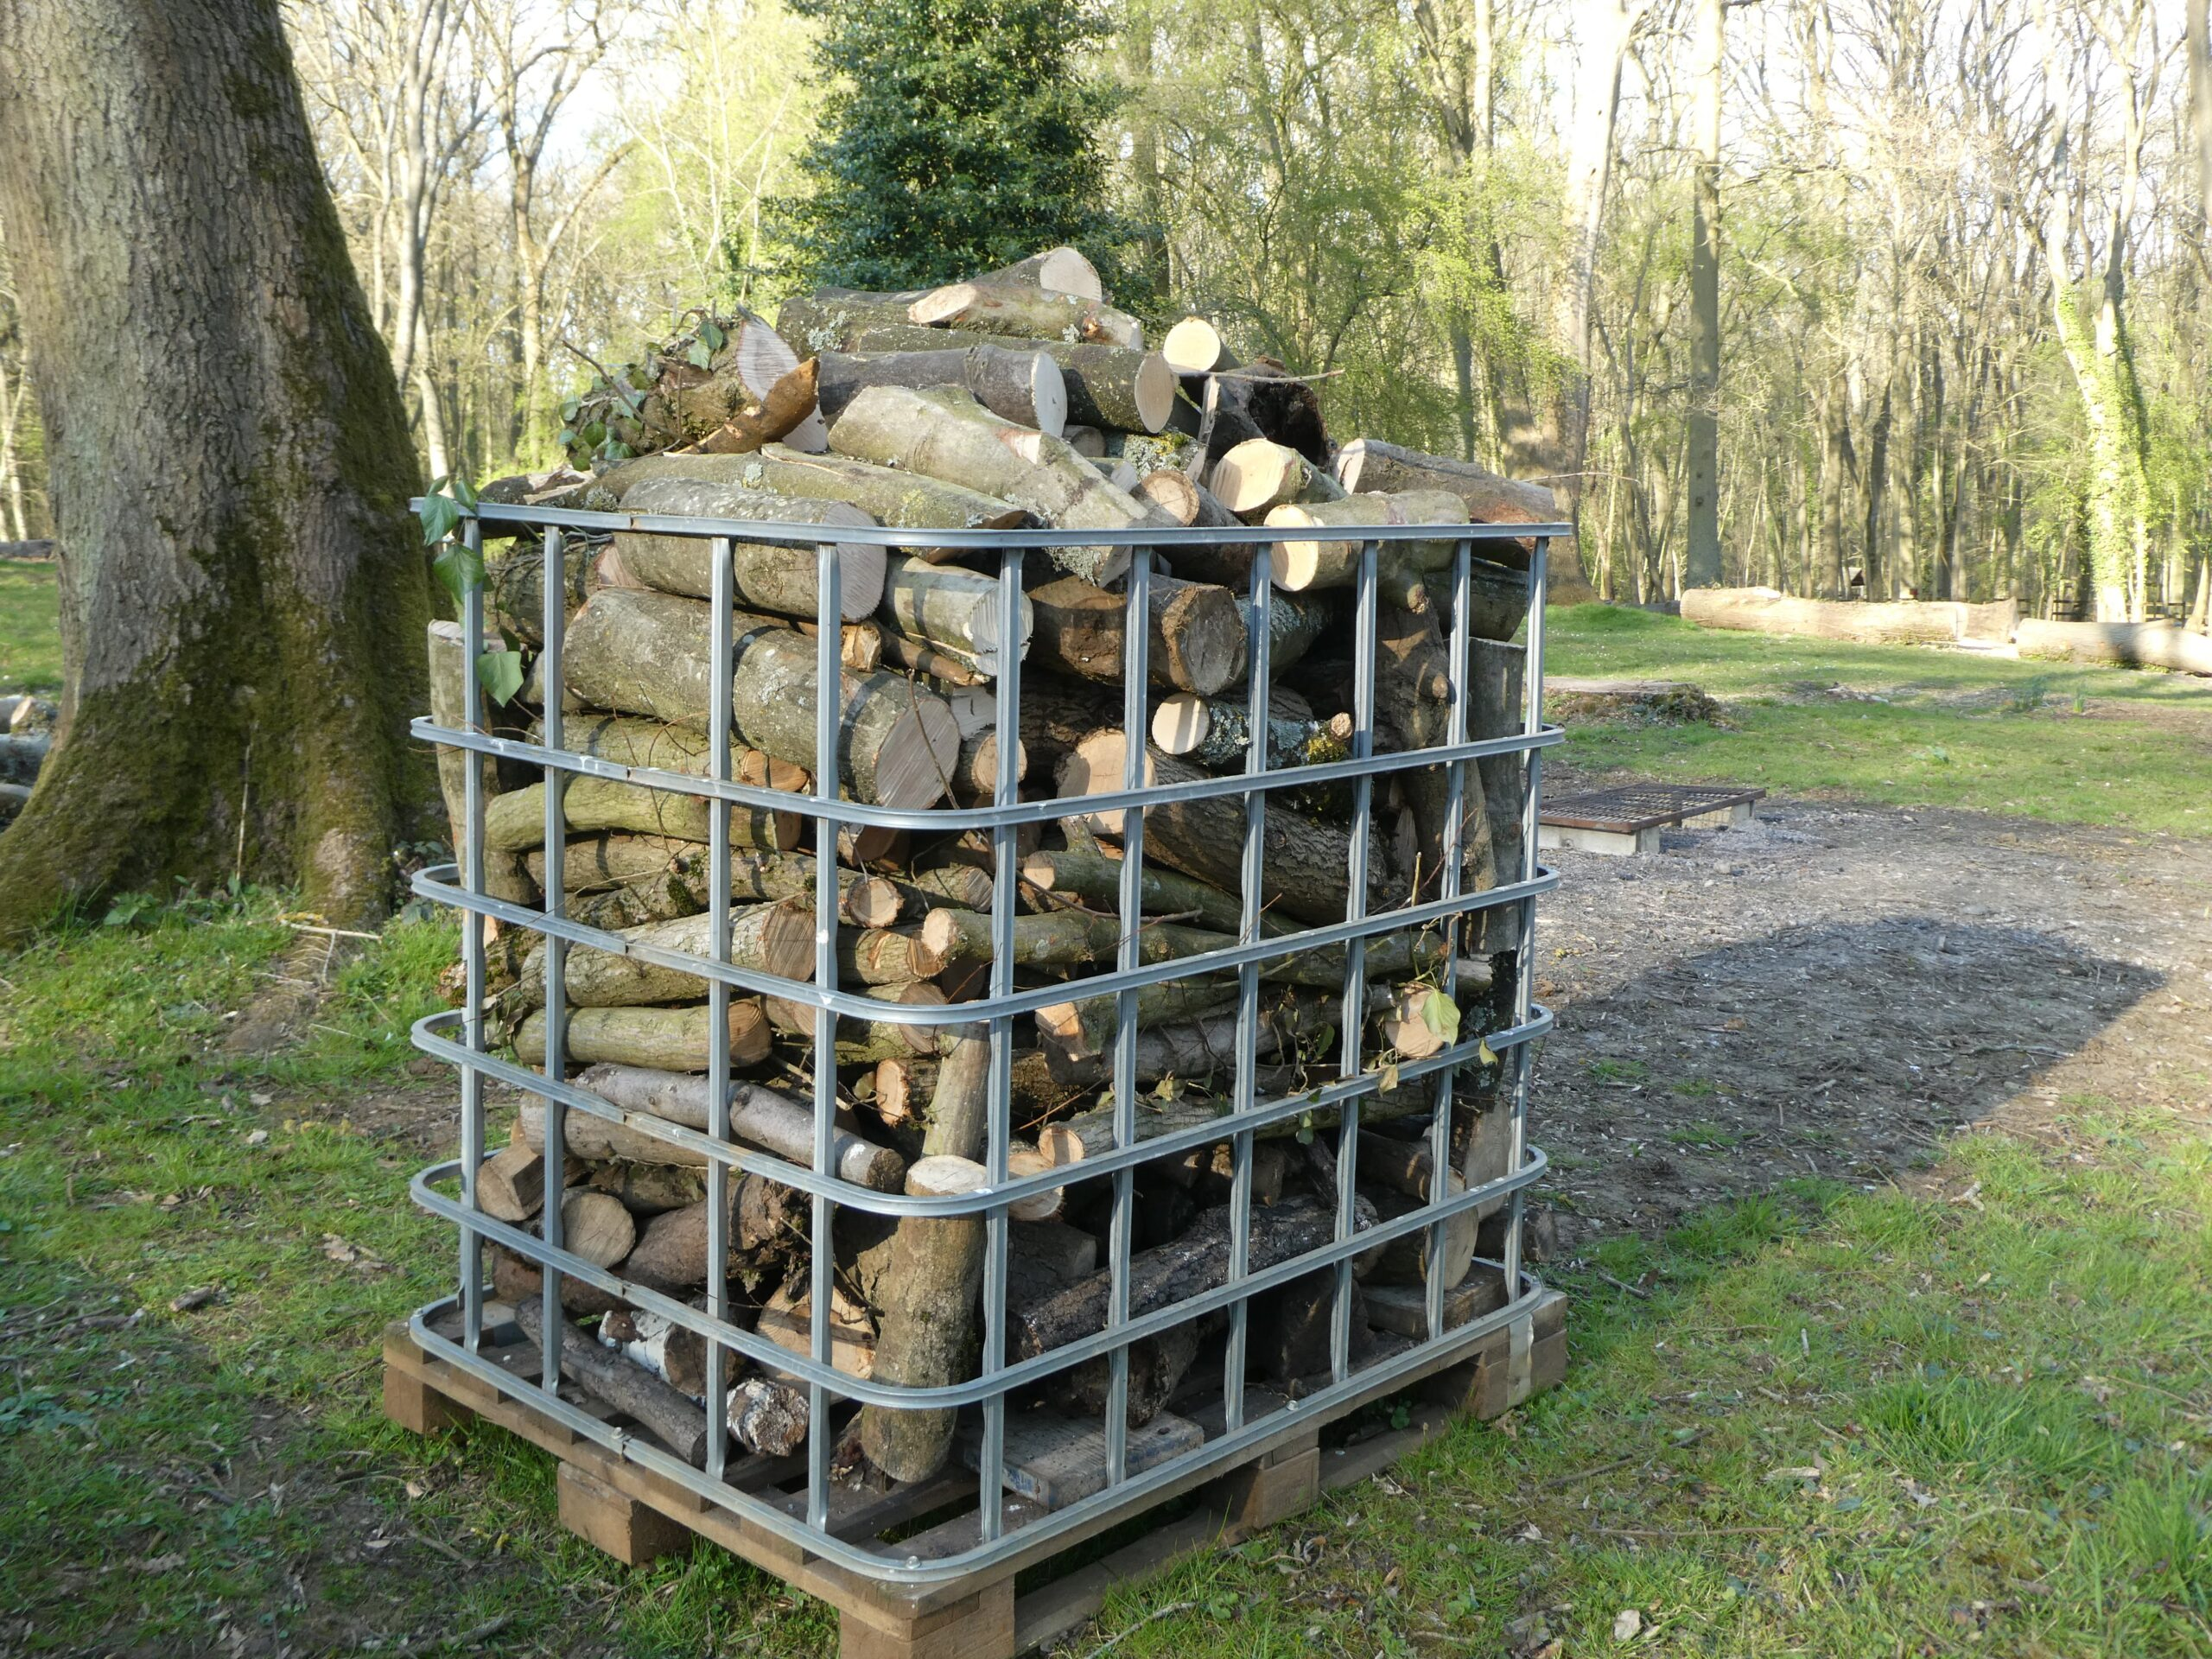 Cage filled with fire wood